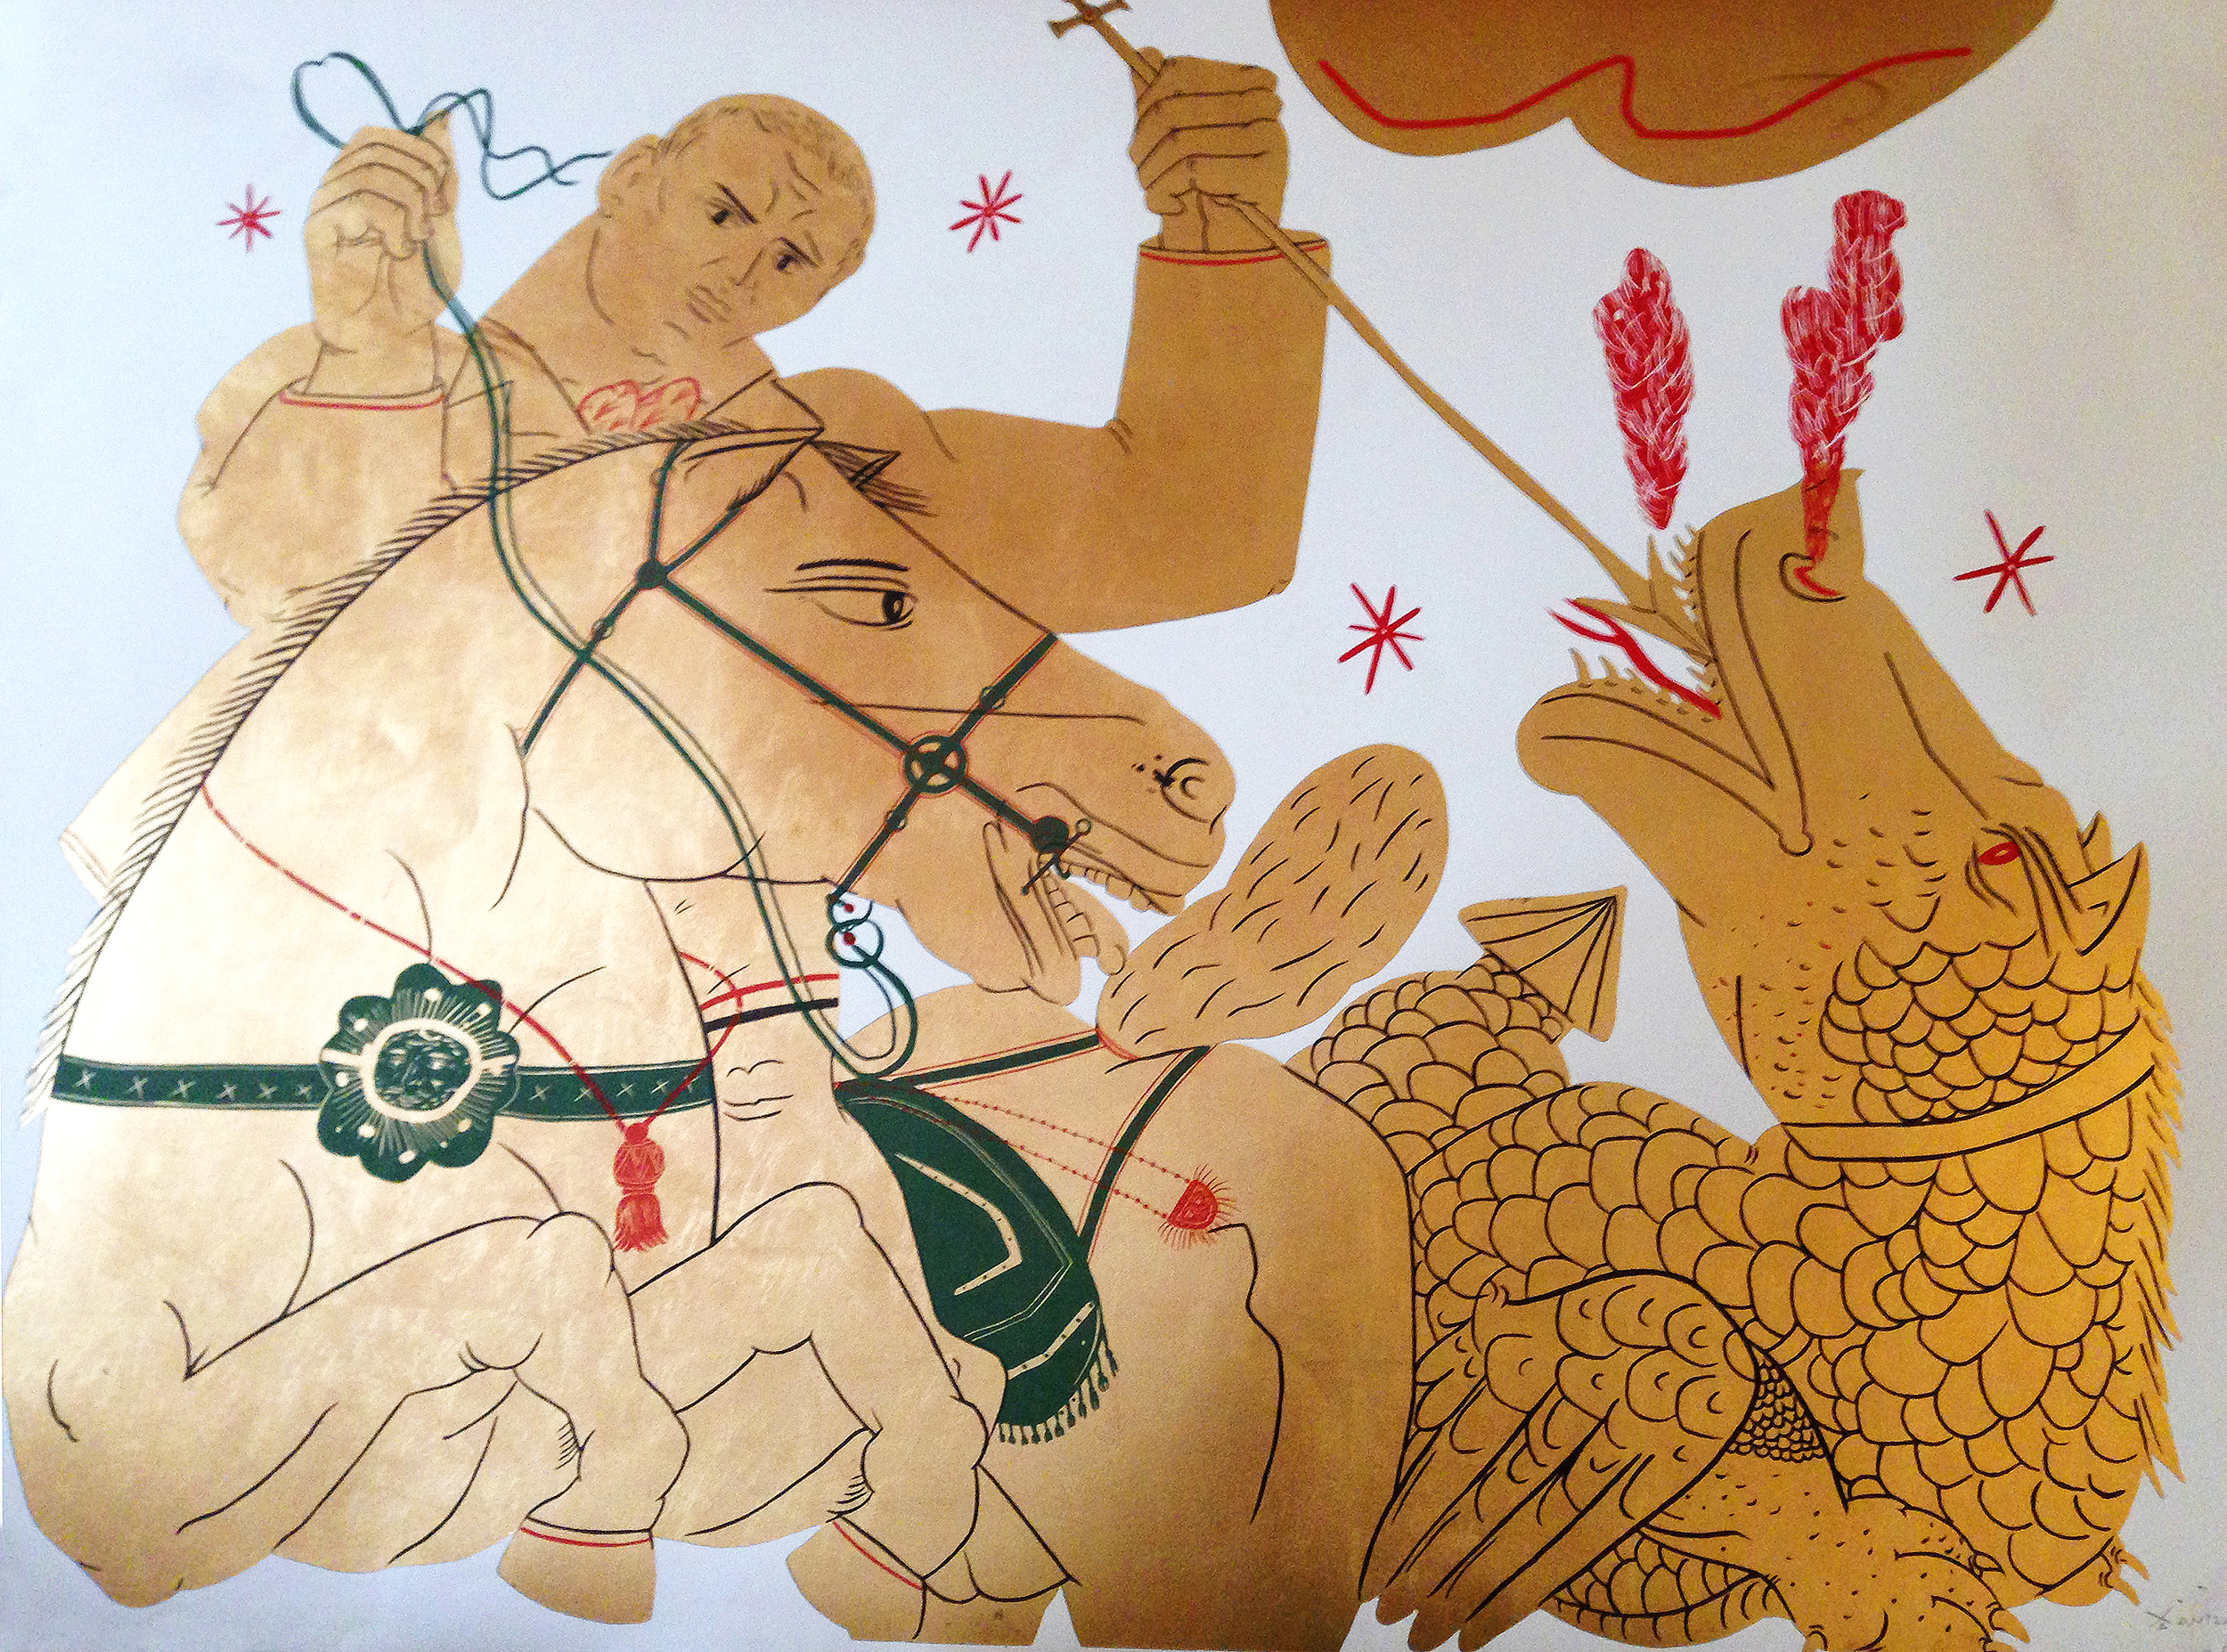 Rider and the Dragon_39x51in_100x130cm_lg.jpg